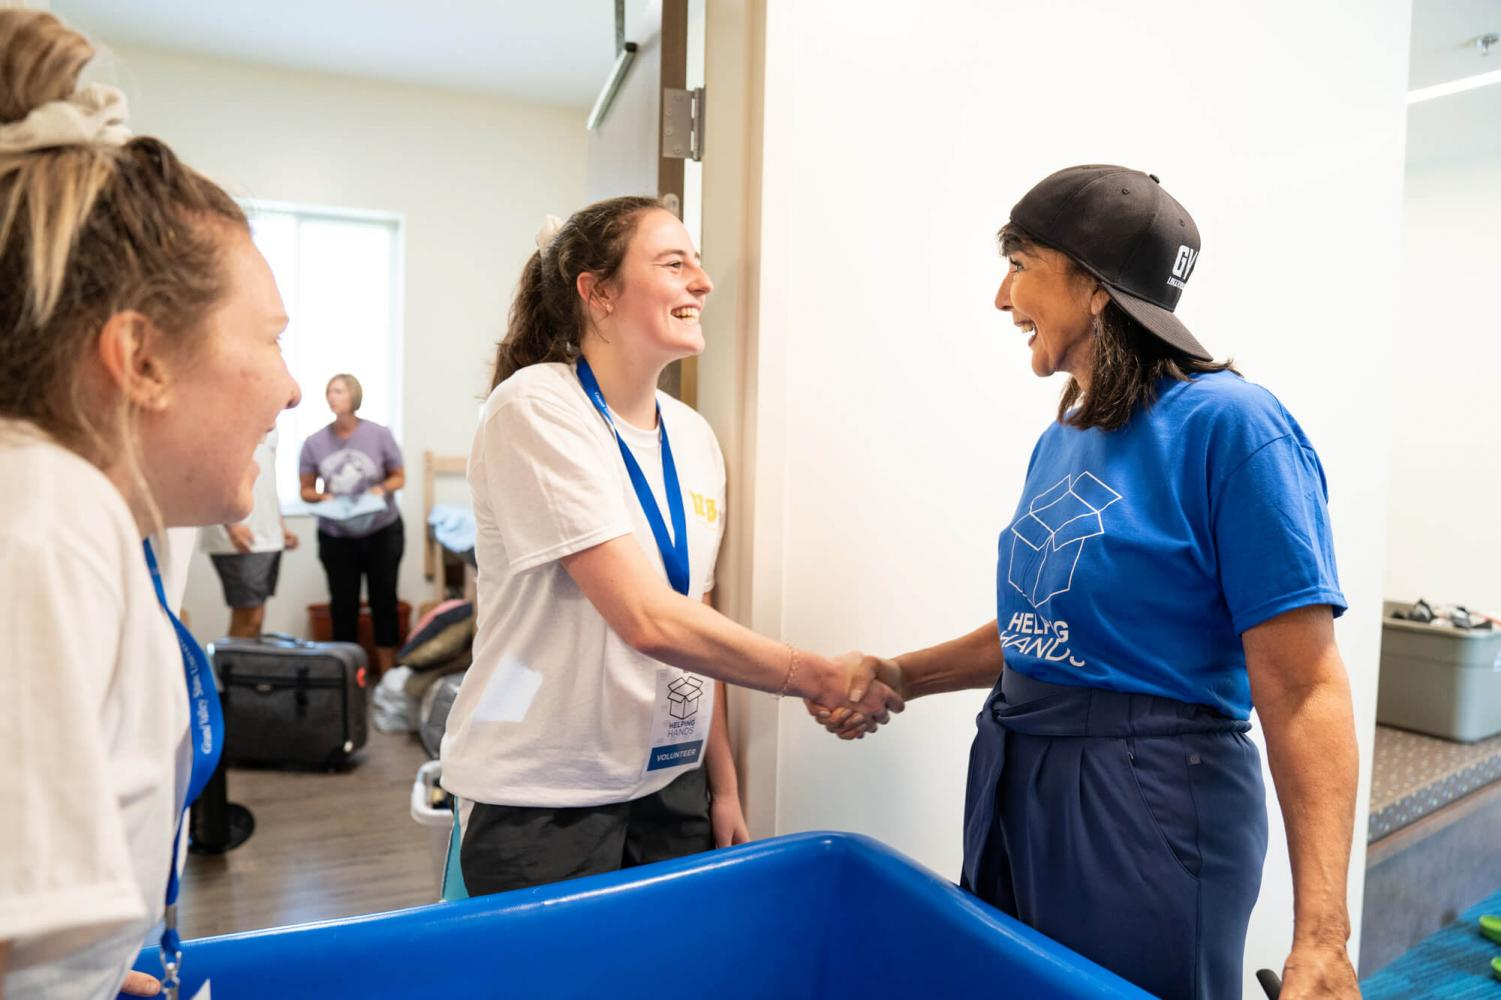 President Mantella meets students during move-in. The Helping Hands program gave GVSU faculty and staff an opportunity to help students settle in. COURTESY | AMANDA PITTS